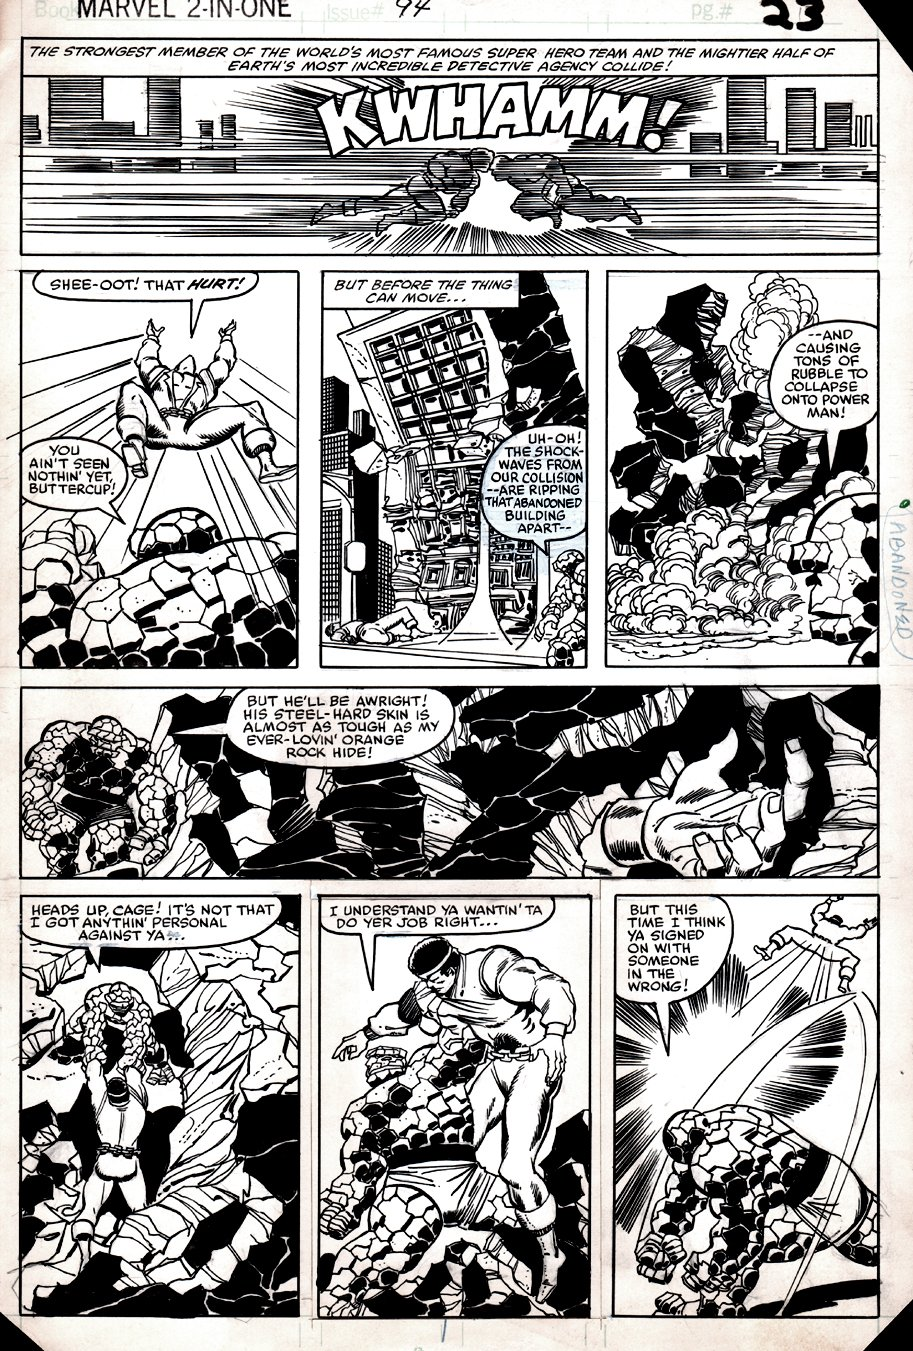 Marvel Two-in-One #94 p 23 (POWERMAN & THE THING, ALL OUT BATTLE!) 1982